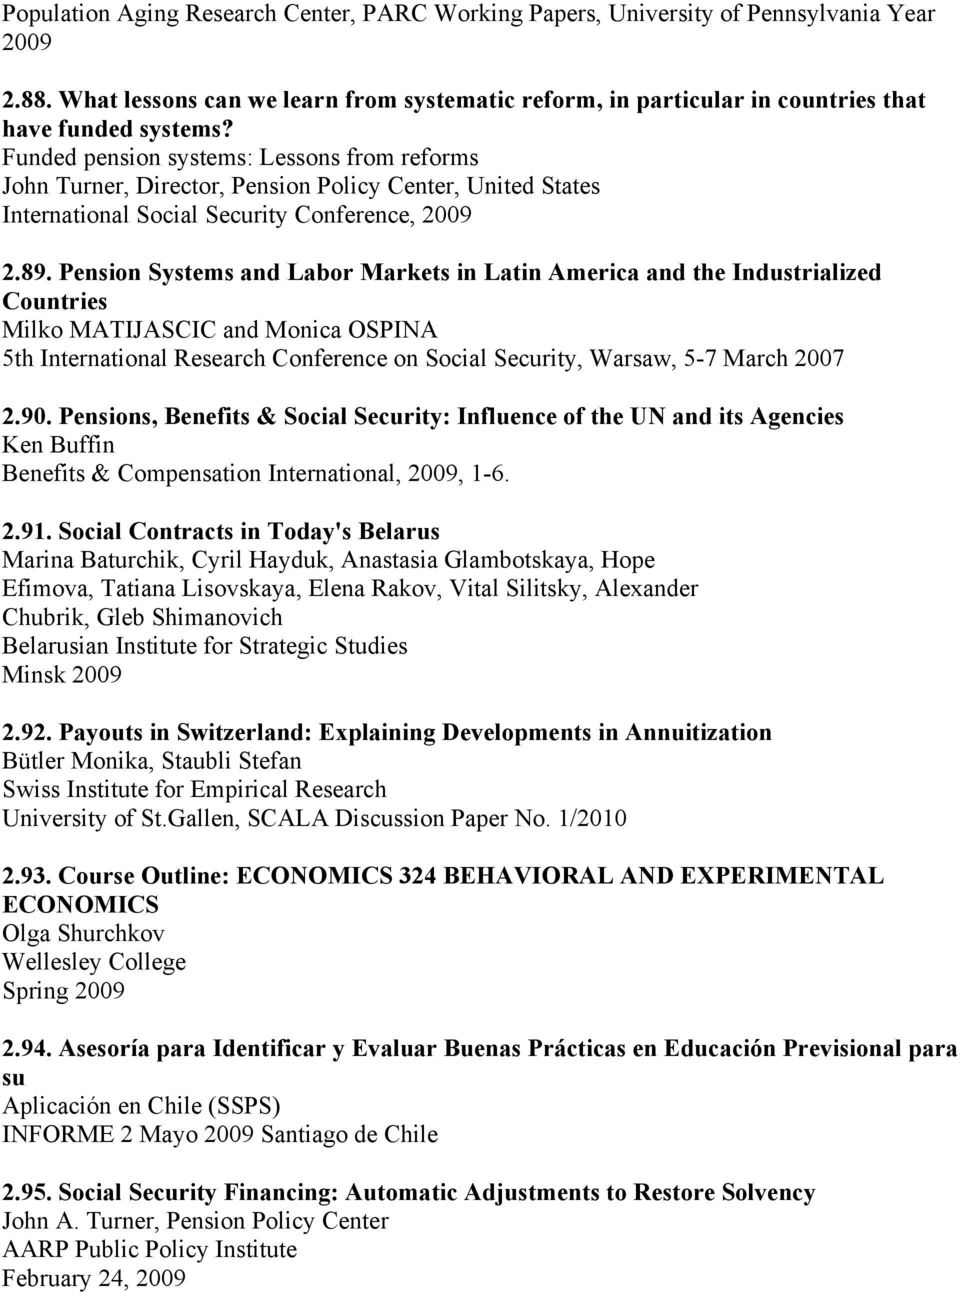 Pension Systems and Labor Markets in Latin America and the Industrialized Countries Milko MATIJASCIC and Monica OSPINA 5th International Research Conference on Social Security, Warsaw, 5-7 March 2007